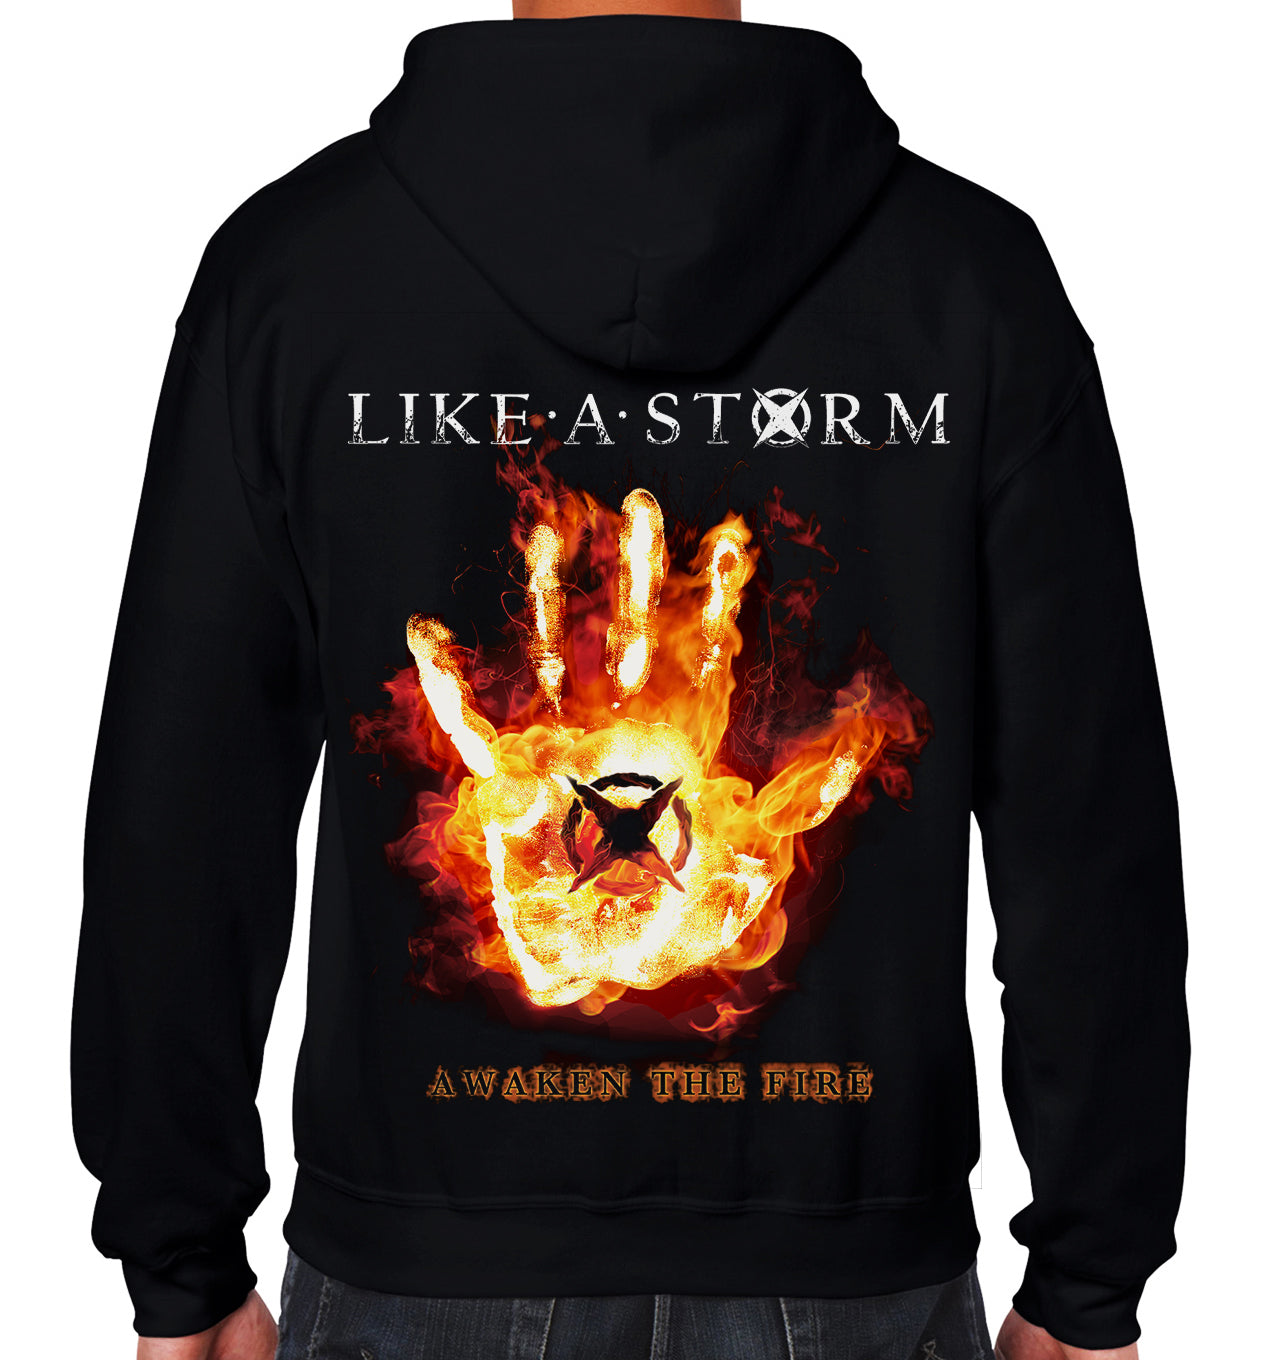 Awaken The Fire Lightweight Zip Hoodie - FREE SHIPPING!